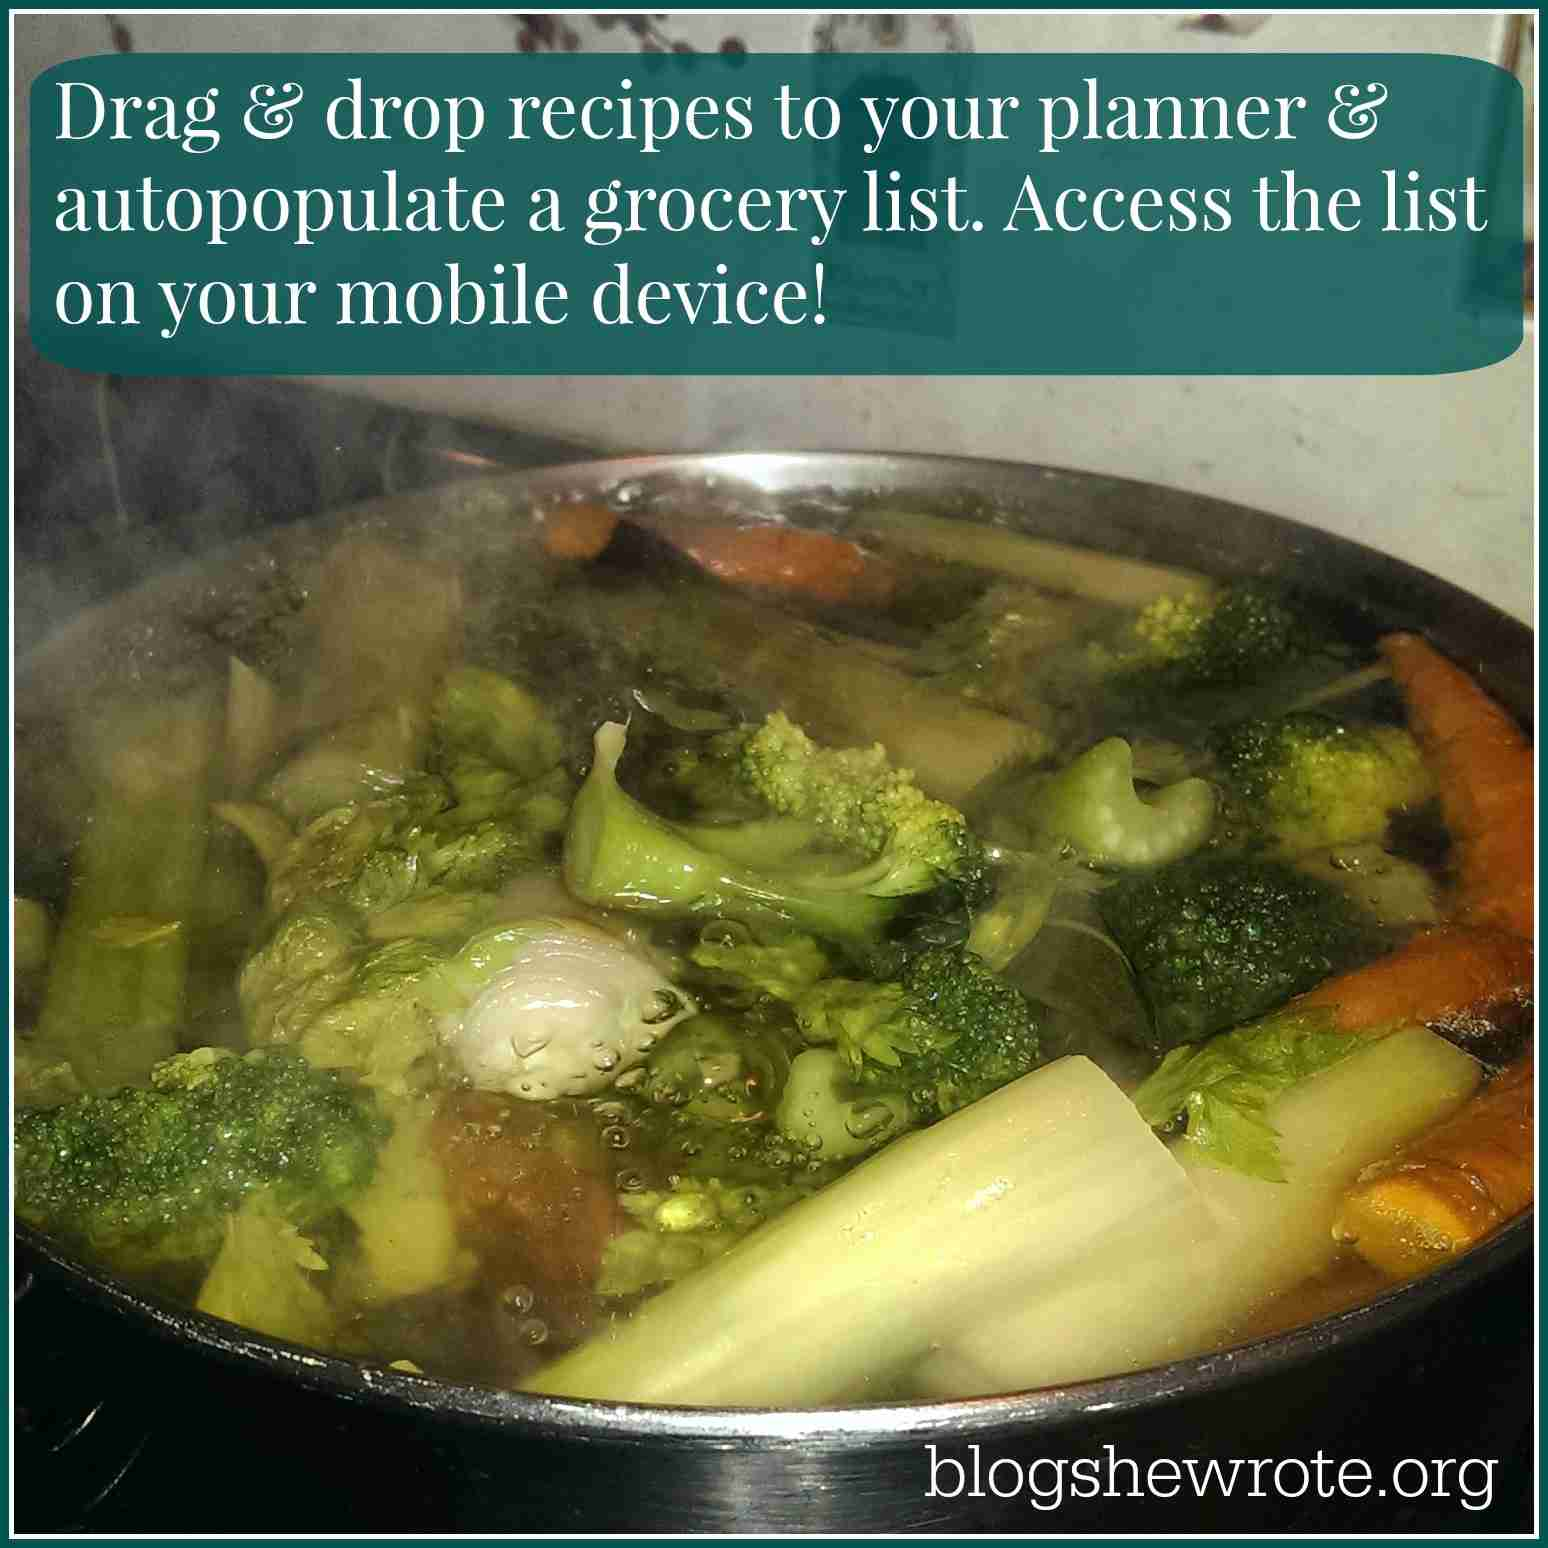 Blog, She Wrote: Meal Planning & Shopping Made Easy with Plan to Eat